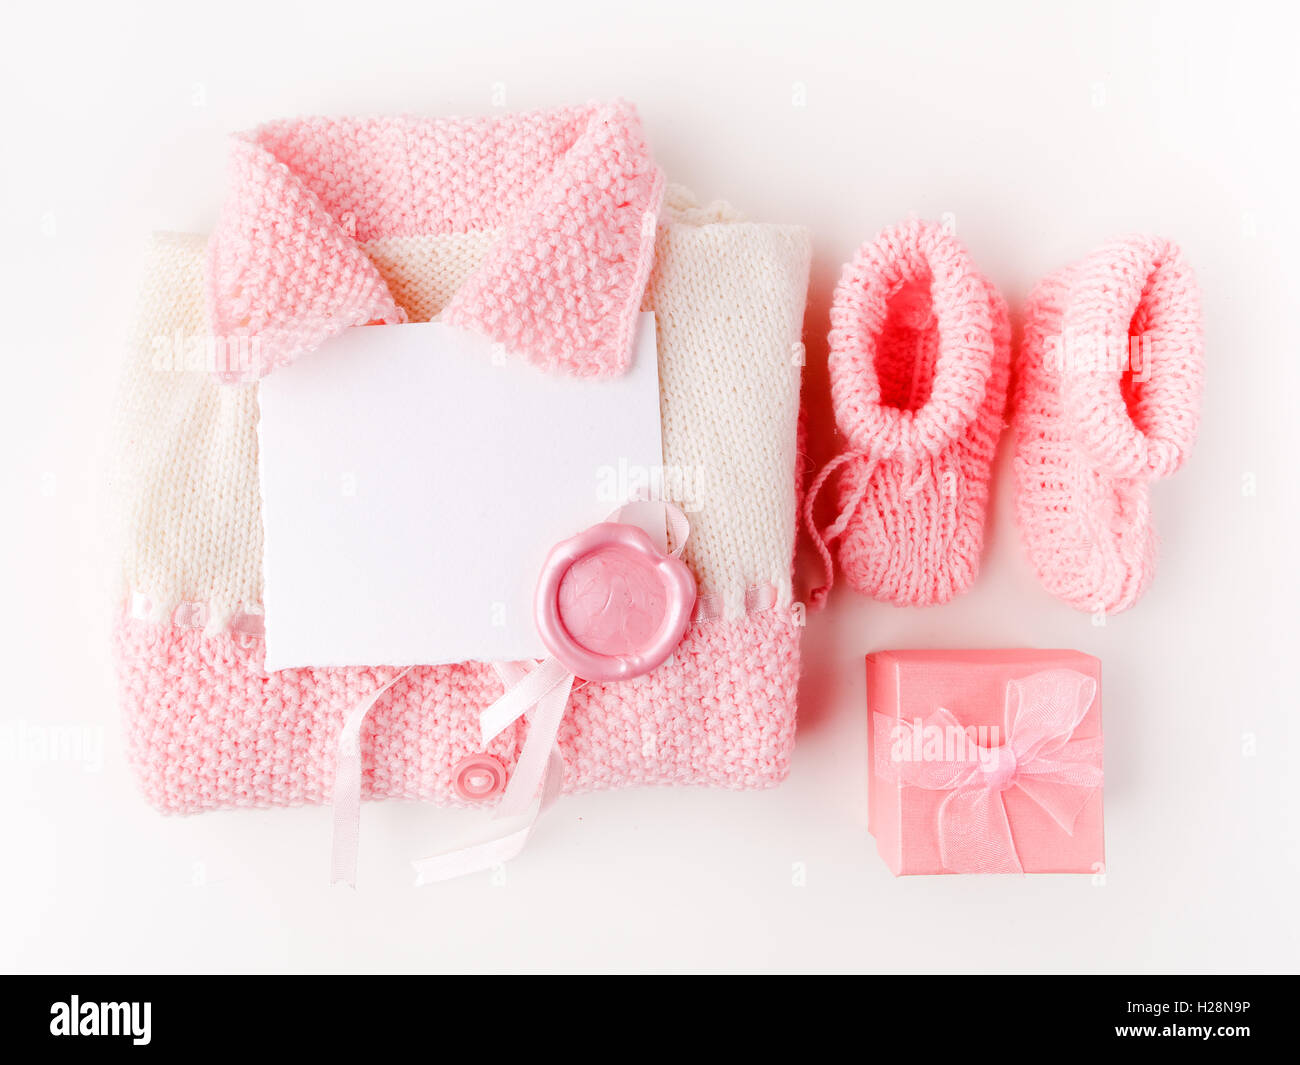 Socks and cloth-pants for baby newborn on white background. Children apparel concept. Flat lay, Top view - Stock Image